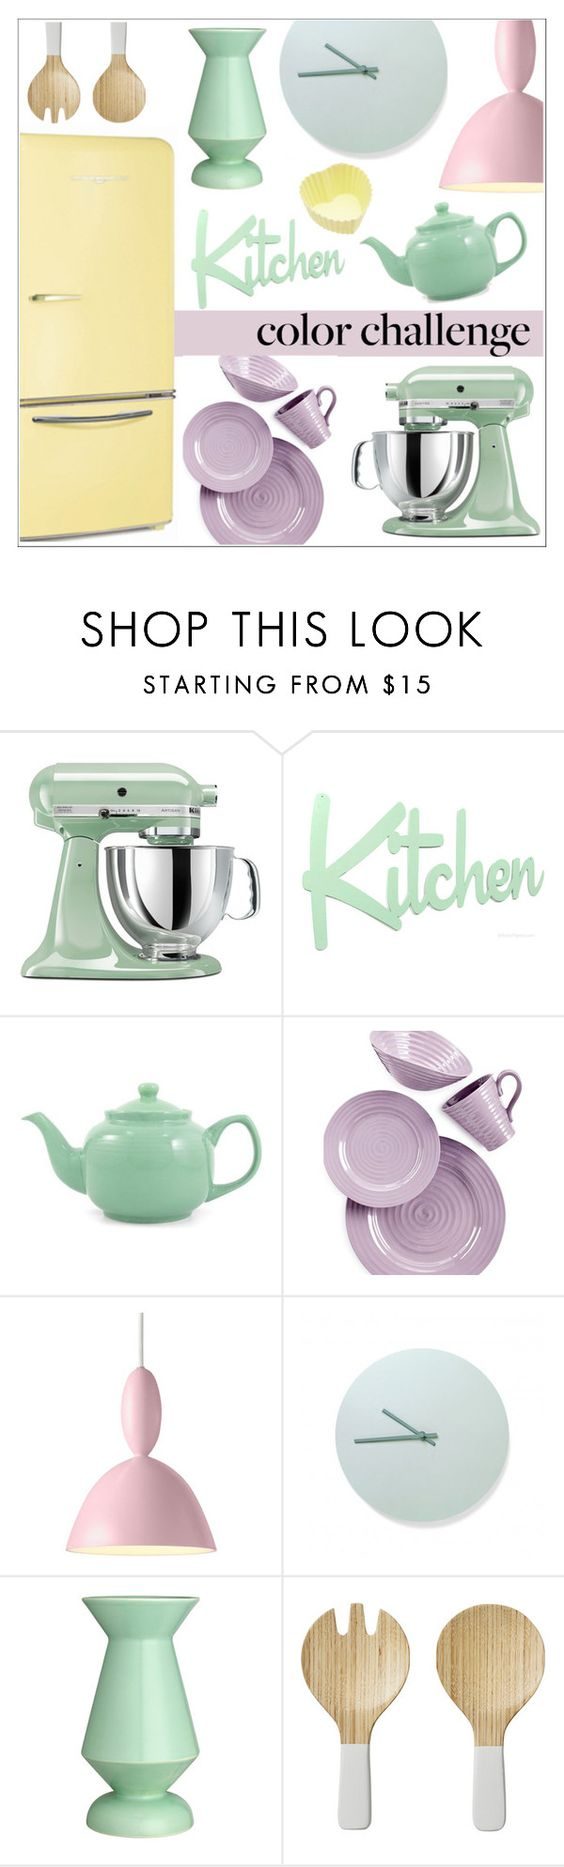 """""""Color Challenge: Pretty Pastels"""" by sebi86 ❤ liked on Polyvore featuring interior, interiors, interior design, home, home decor, interior decorating, KitchenAid, Portmeirion, Muuto and Menu"""